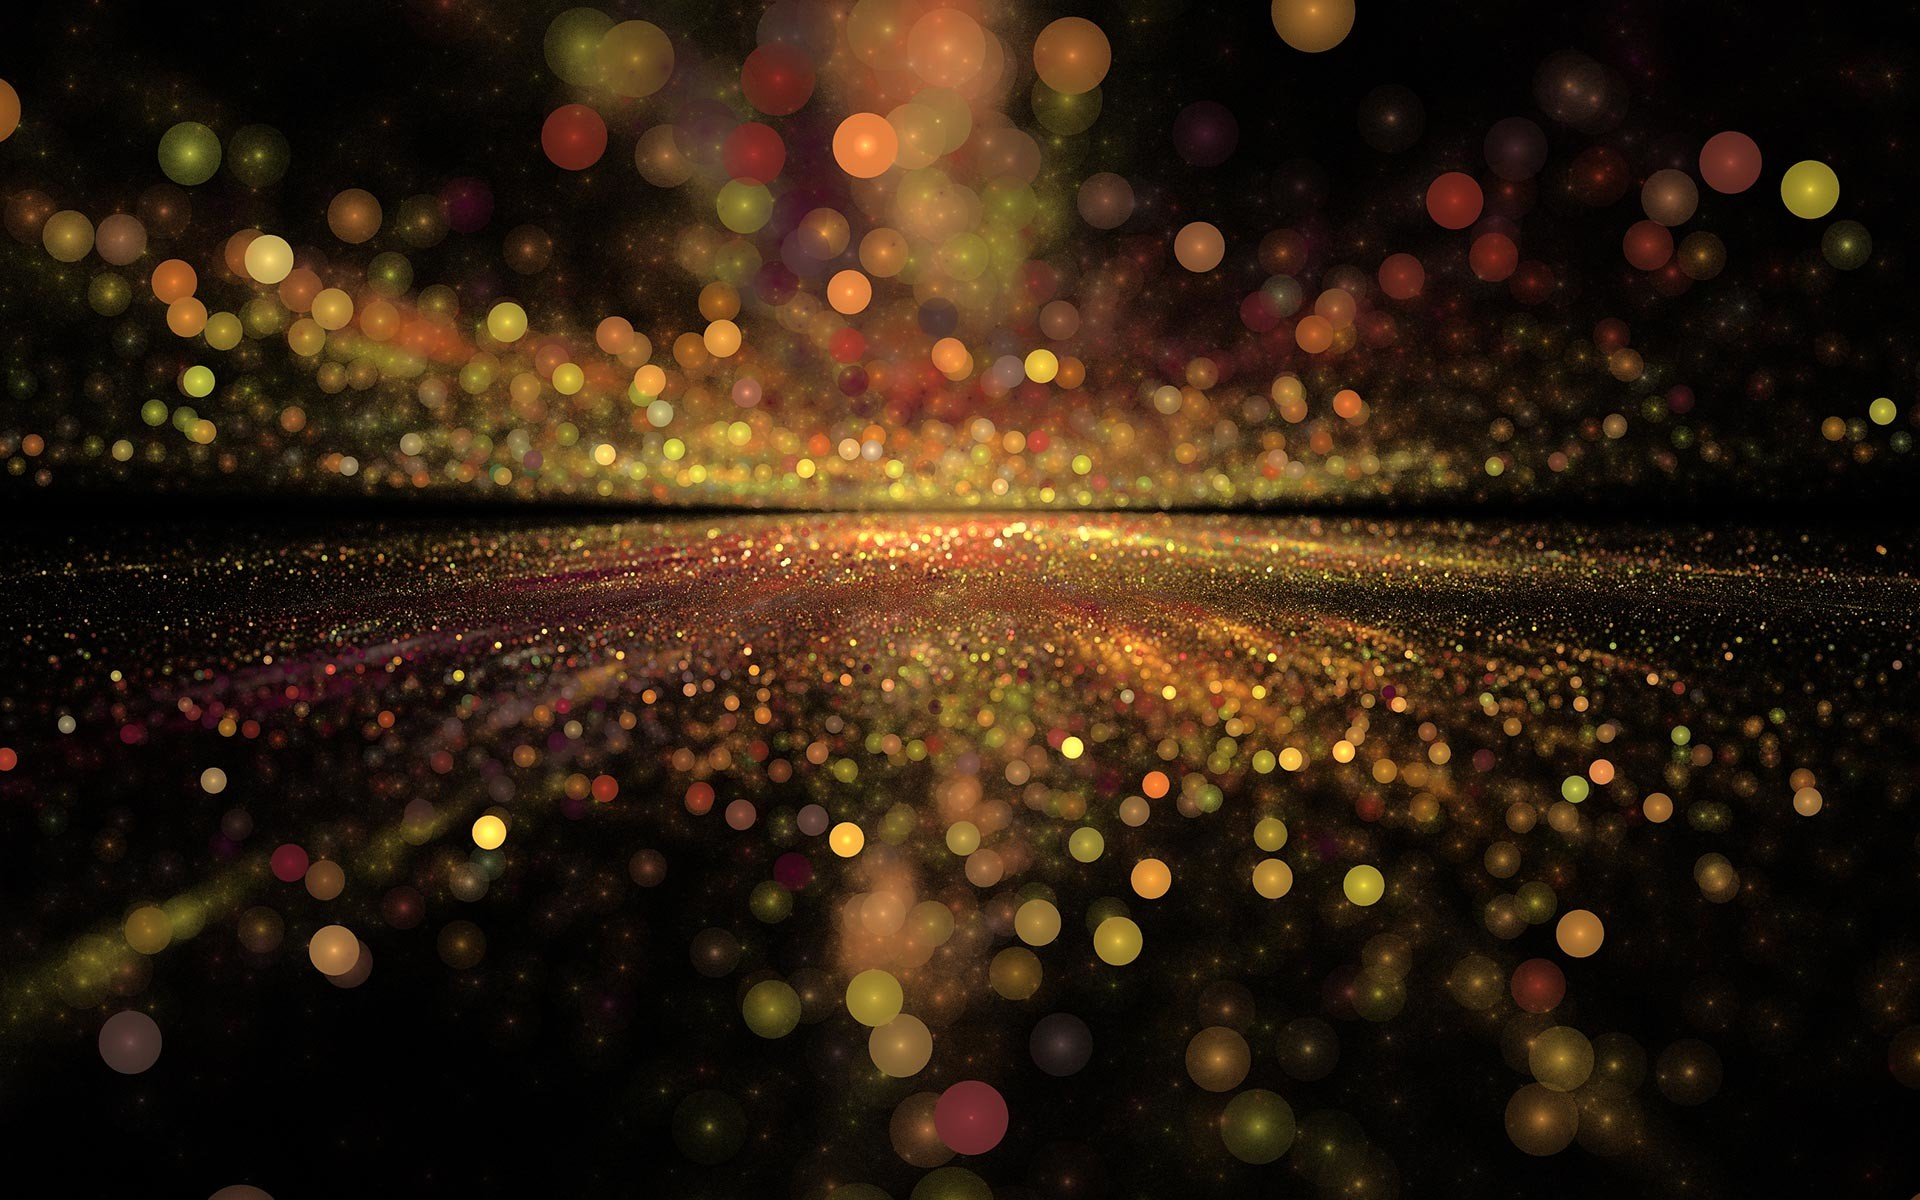 Gold glitter background wallpaper 58 images - Gold desktop background ...